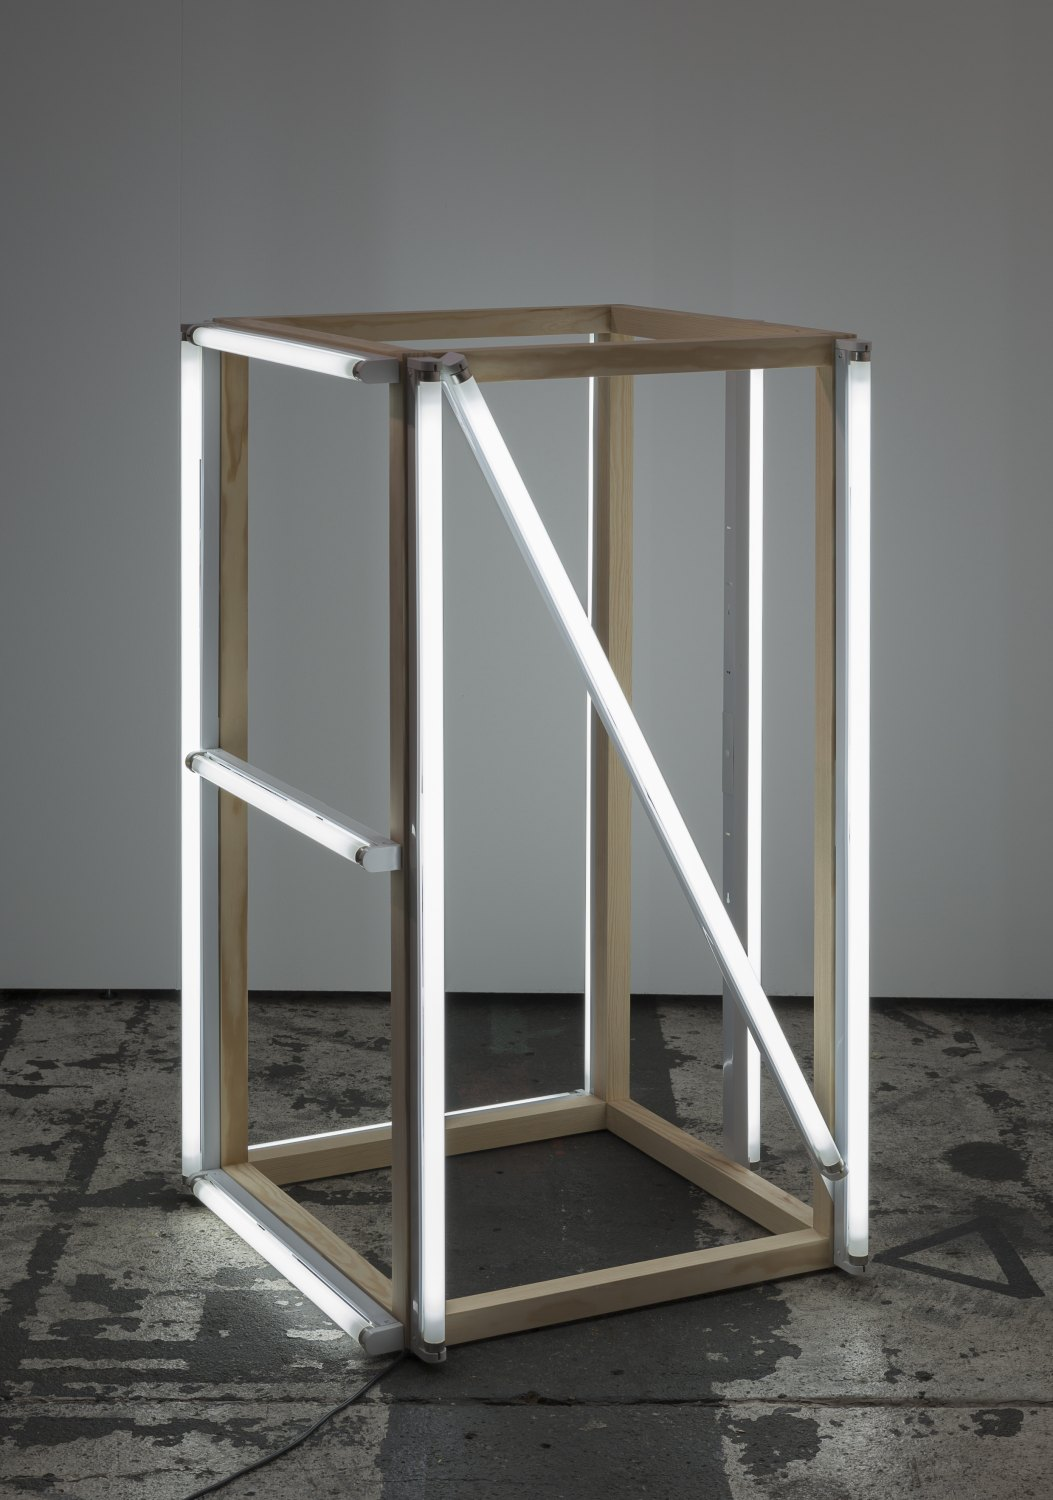 Karl Holmqvist Untitled (Four-letter word sculpture NICE), 2015 Wood, fluorescent tubes, 124 × 70 × 70 cm